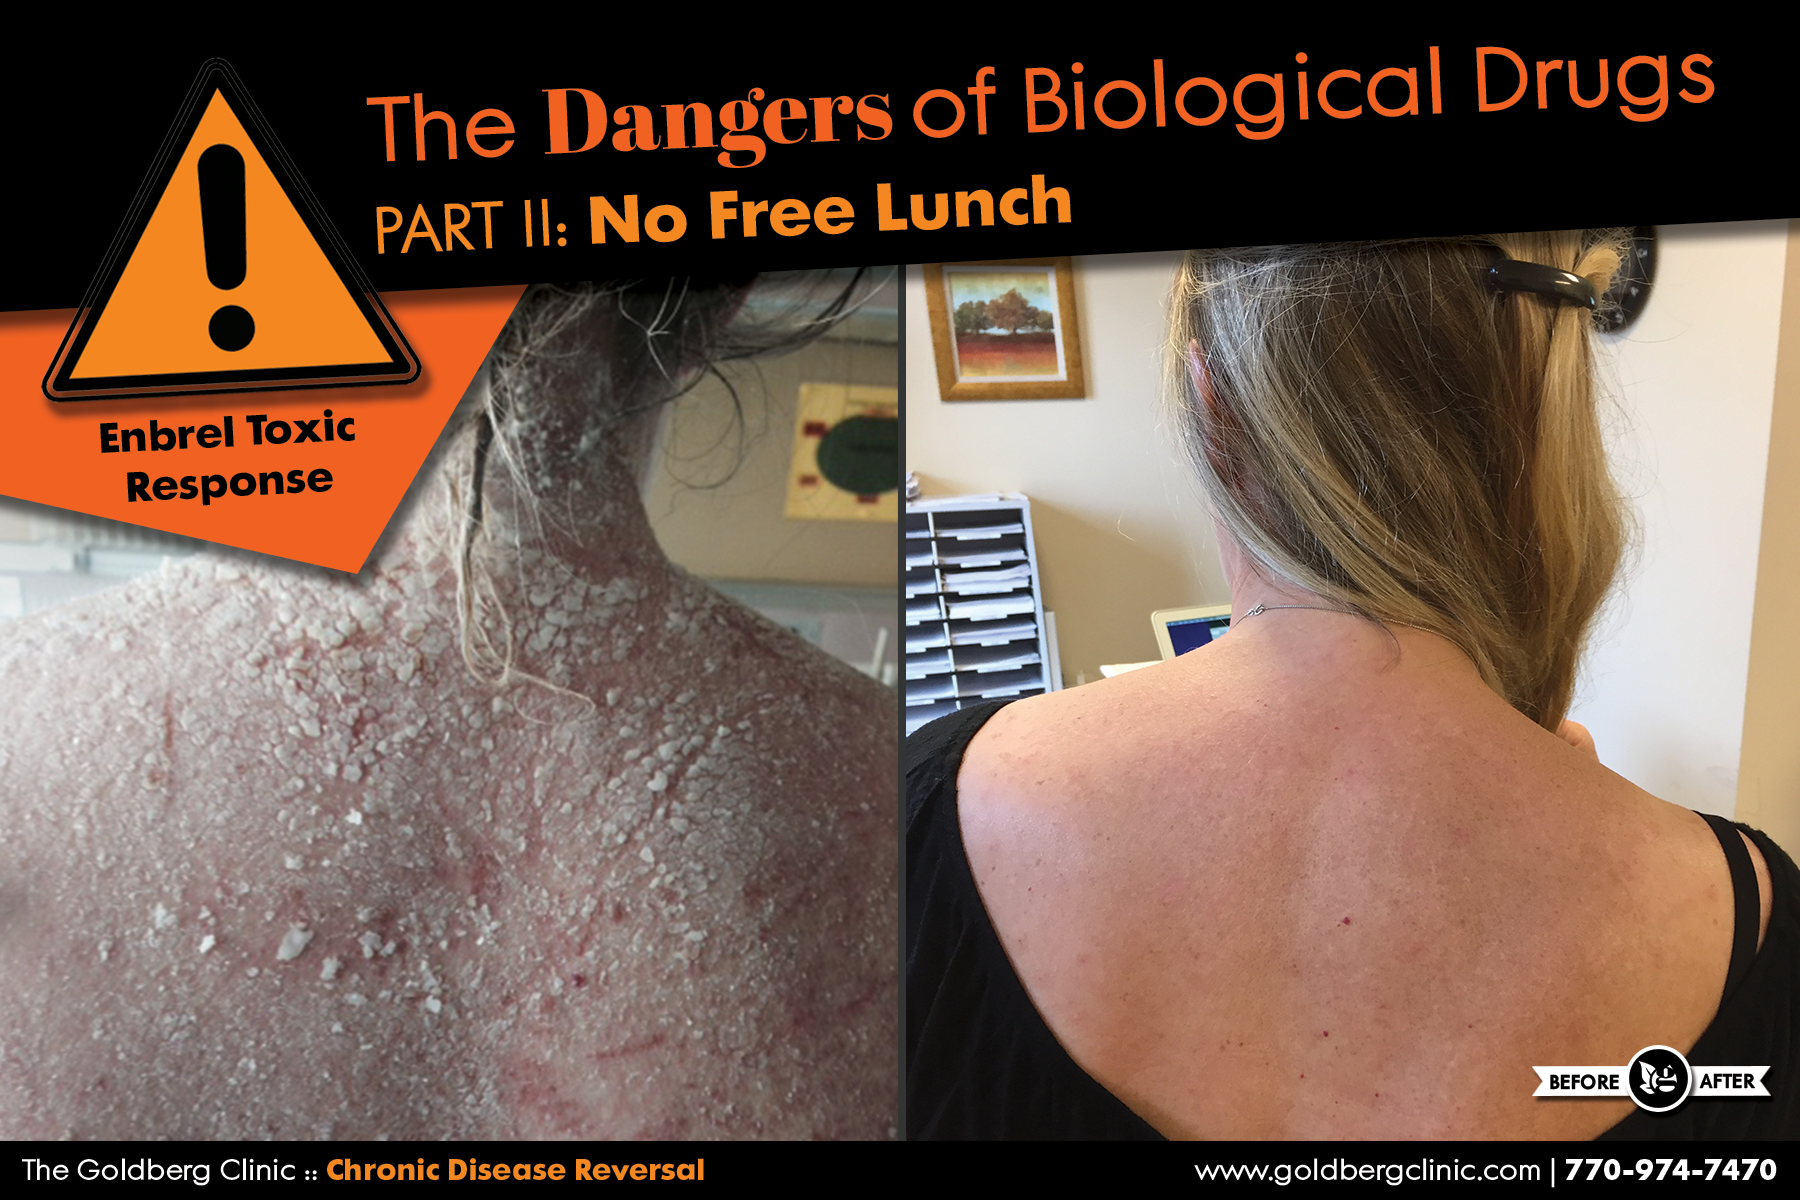 Heather (see pictures above and below)came to the Goldberg Clinic in June 2015 after having suffered a severe allergic reaction to Enbrel, a biological drug prescribed for her Rheumatoid Arthritis. Following injections, she saw swelling and redness around the injection site which then gradually progressed into a severe full body rash. Heather was hospitalized and prescribed Prednisone to suppress the allergic response. The nurse informed her that she had experienced a toxic reaction to Enbrel.